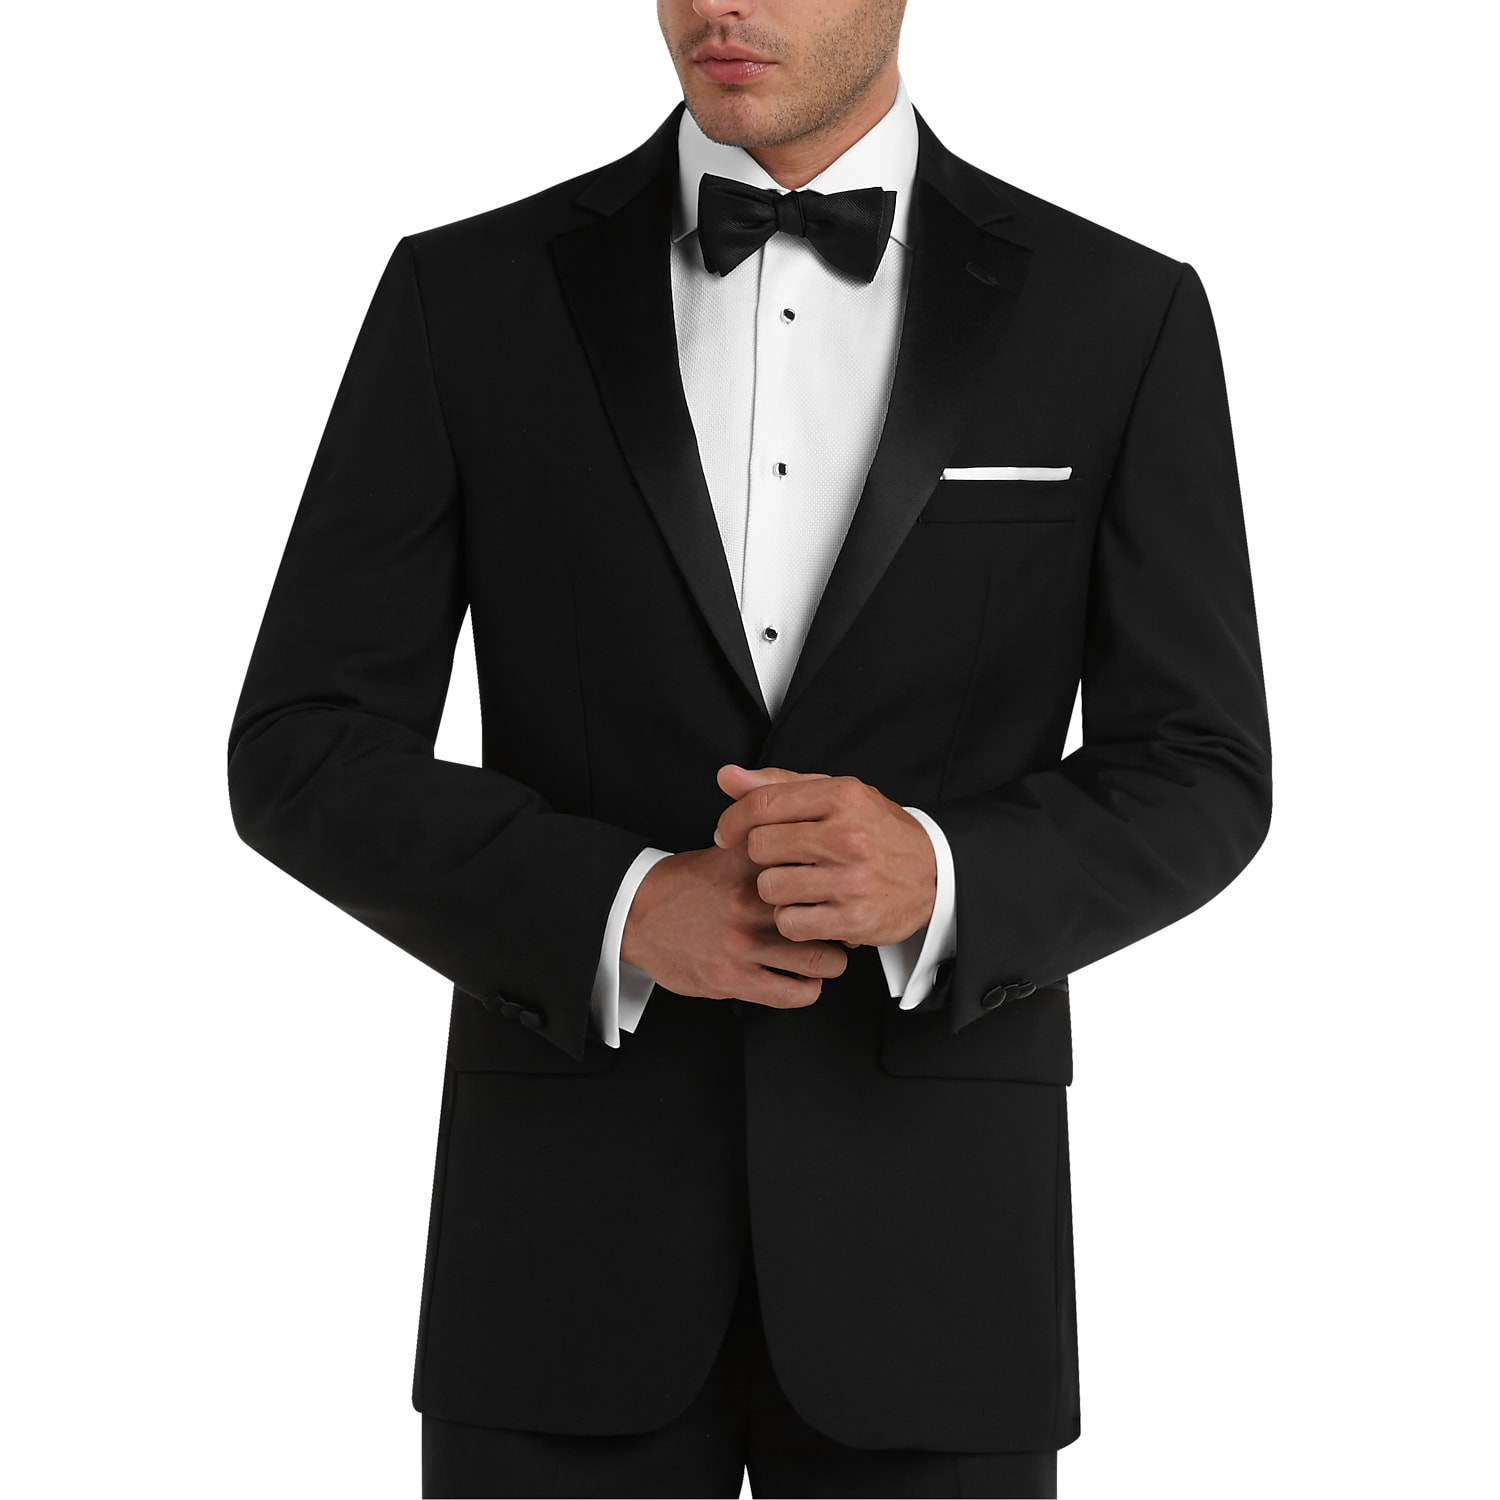 3e03213ee73 Mens Home - Pronto Uomo Black Modern Fit Tuxedo - Men s Wearhouse